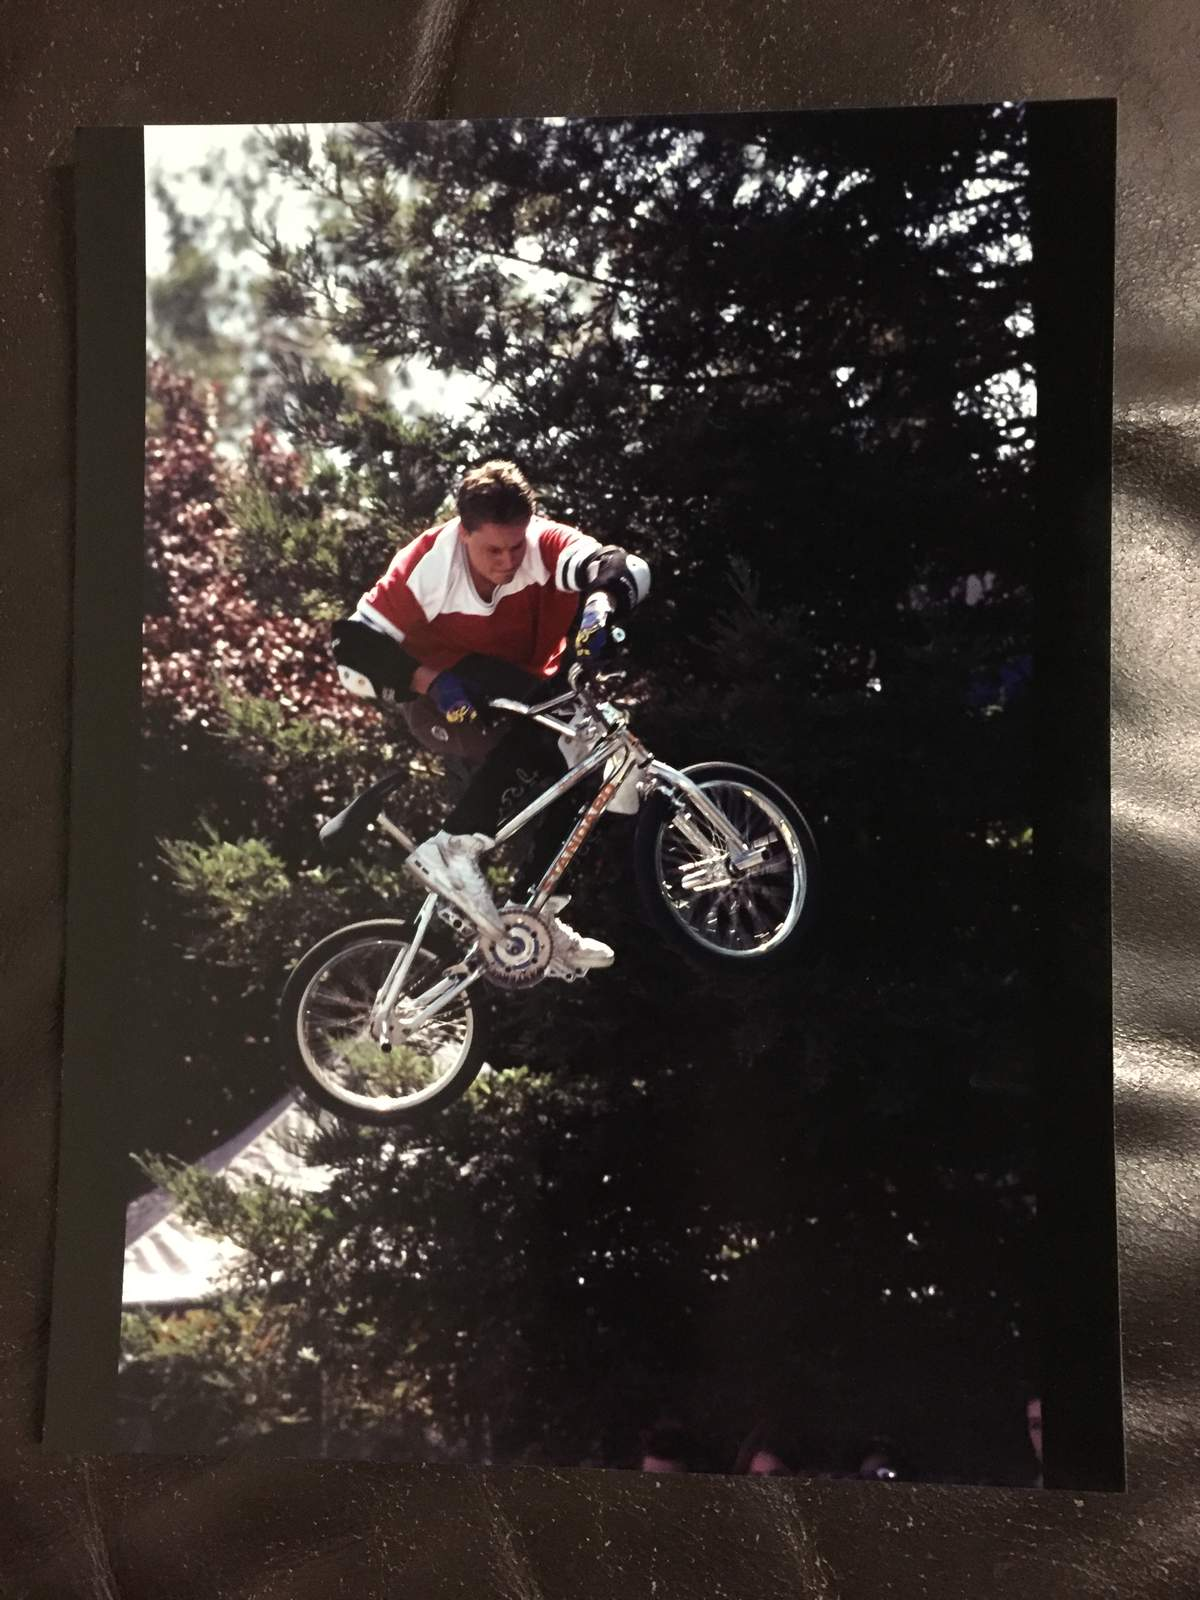 http://uploads.bmxmuseum.com/user-images/19713/8b08d9ac-315e-4451-abc5-c9ee8bee04735c16ccf1ae.jpeg